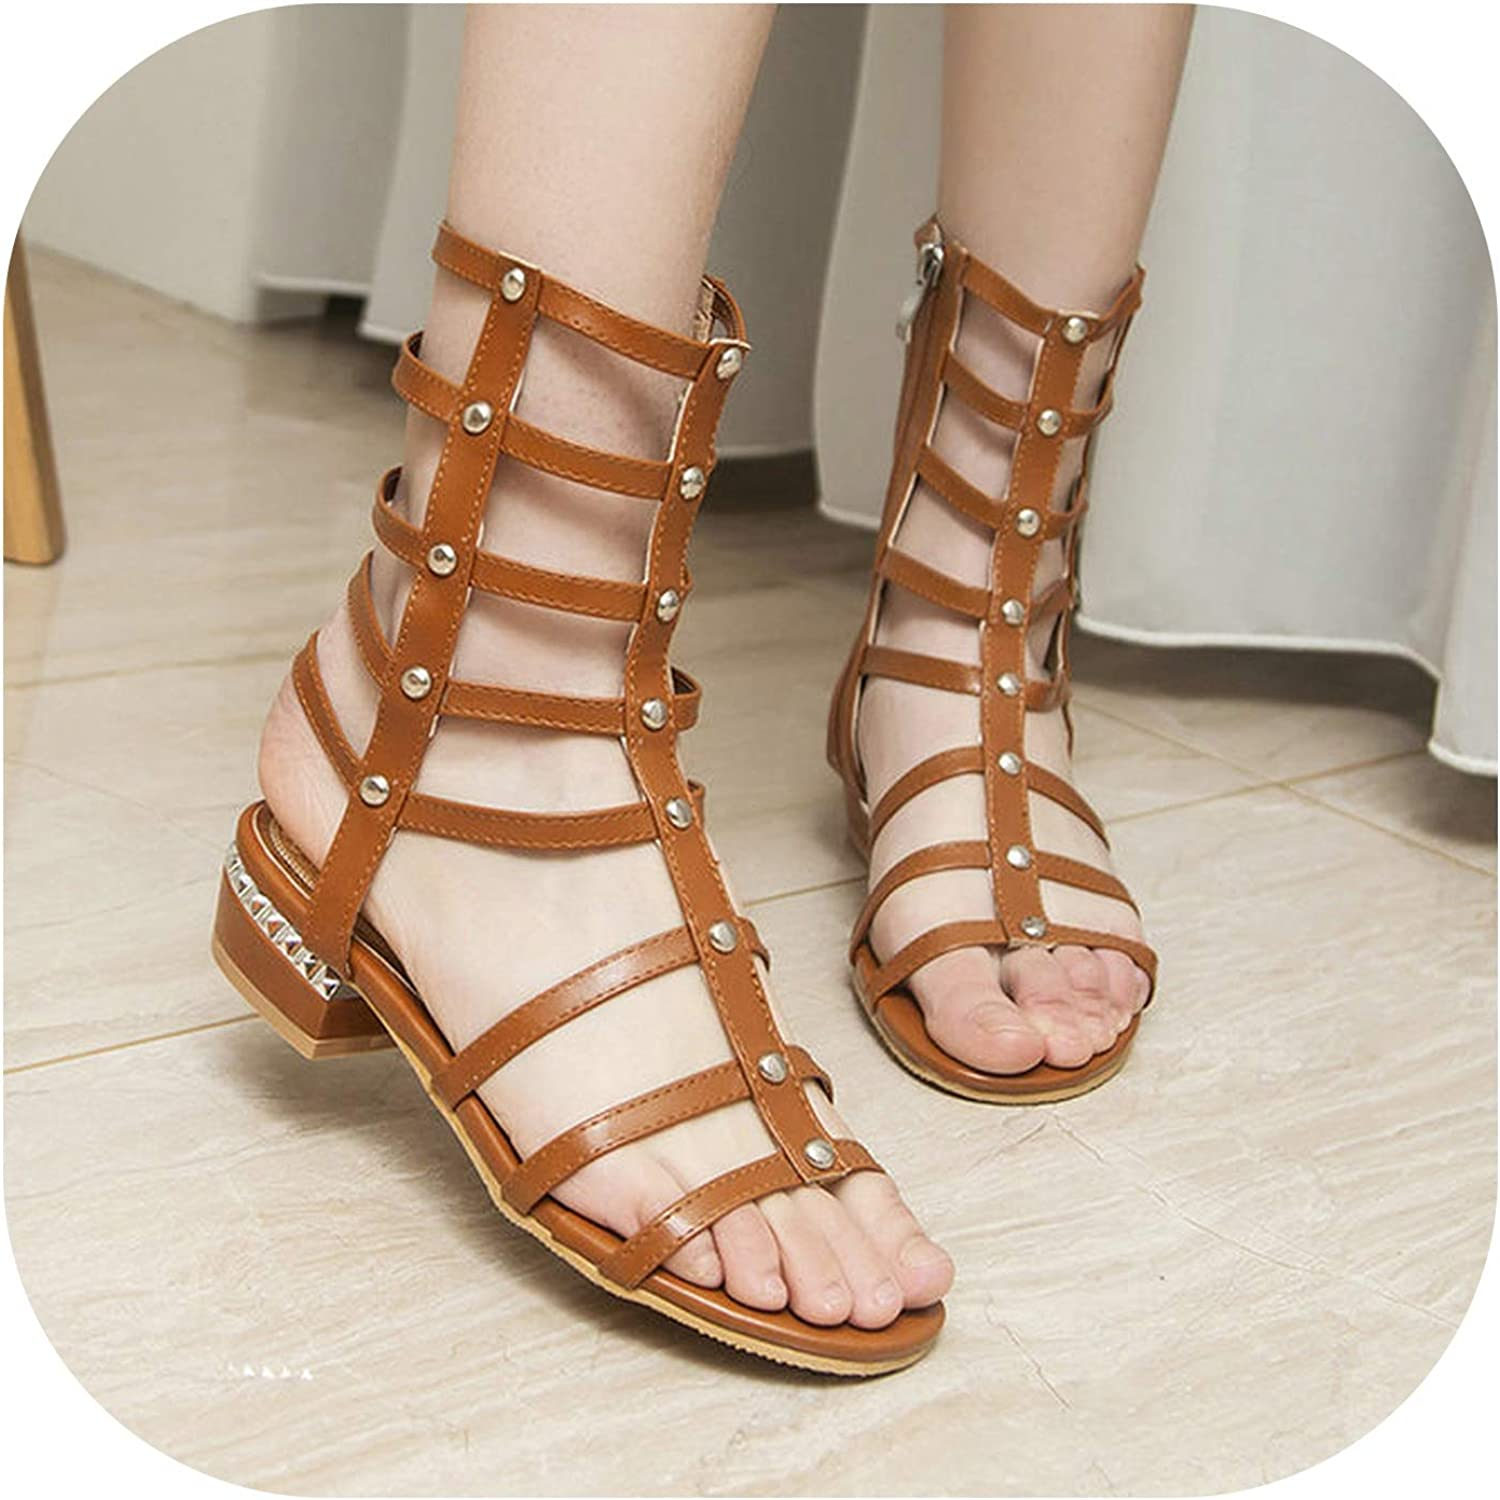 2019 Summer Gladiator Sandals Female Open Toe Low Heels Zipper Casual shoes Women White Black Brown Size 34-43,Brown,5.5